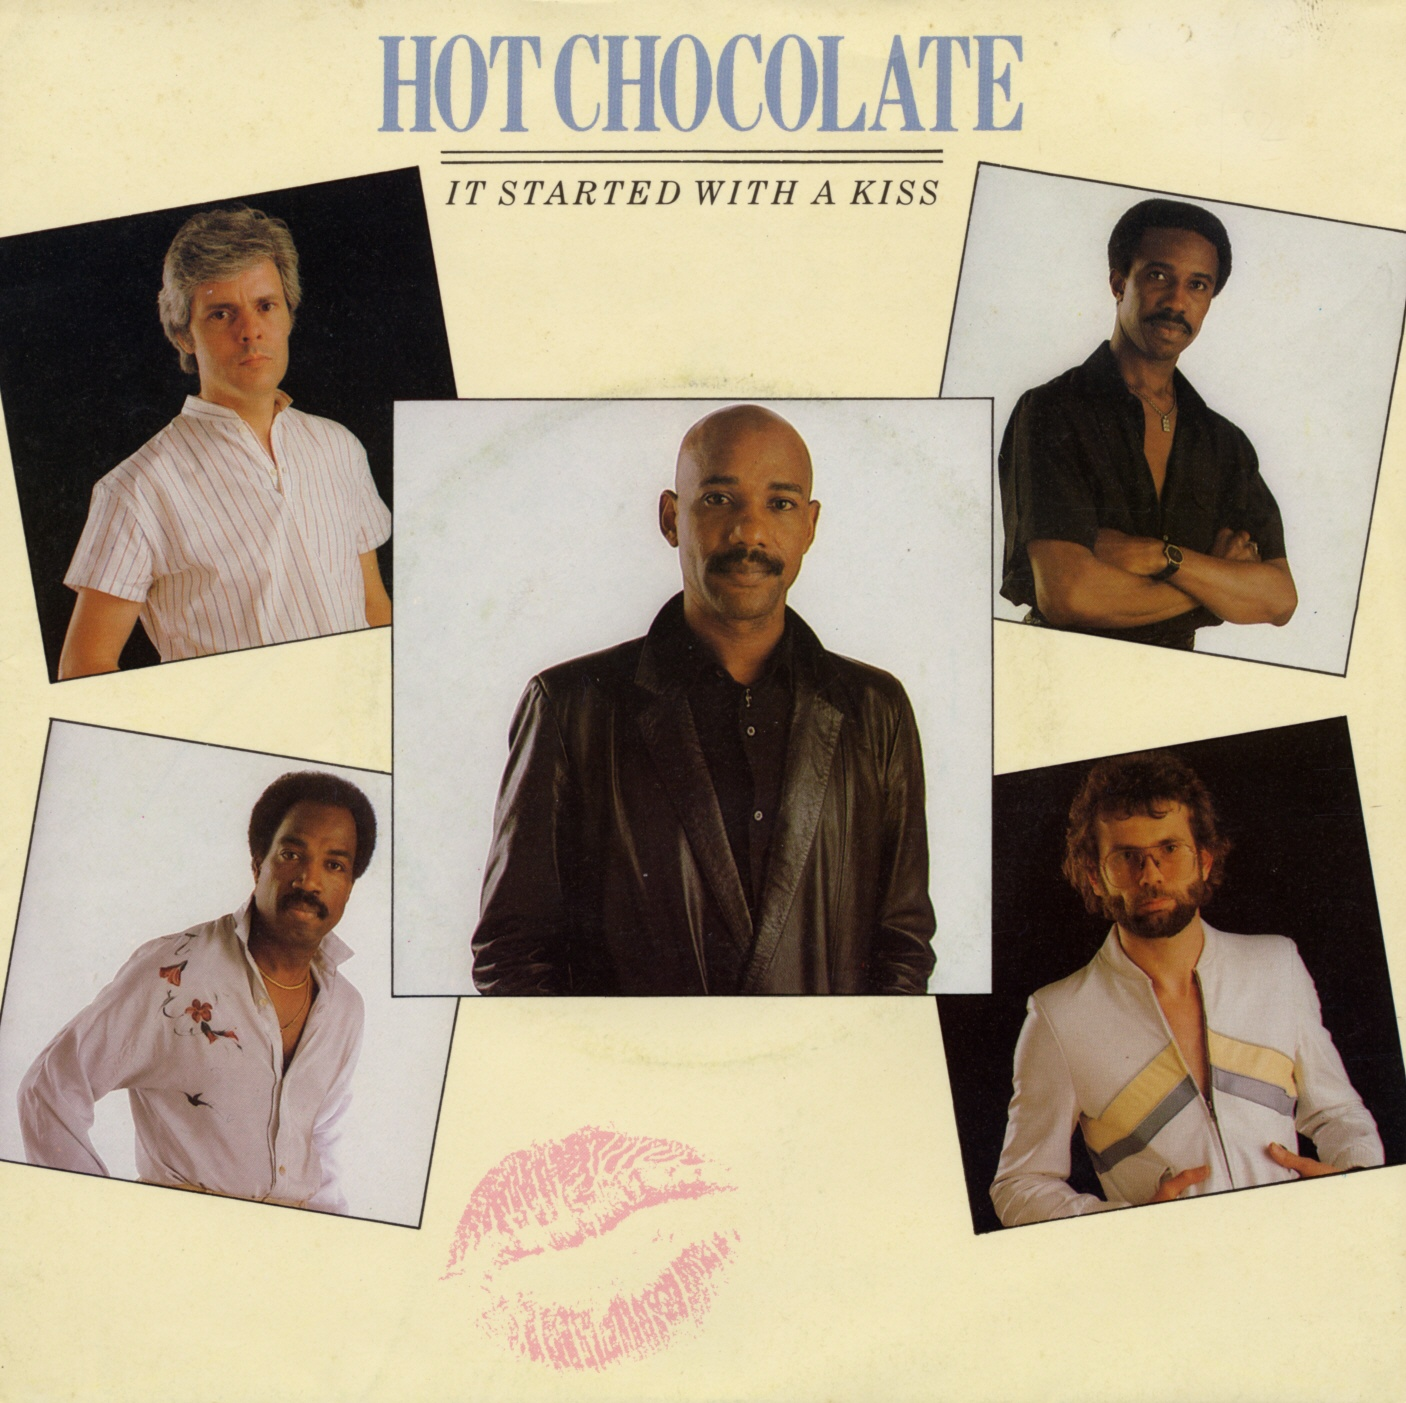 Cover: It started with a kiss, Hot Chocolate